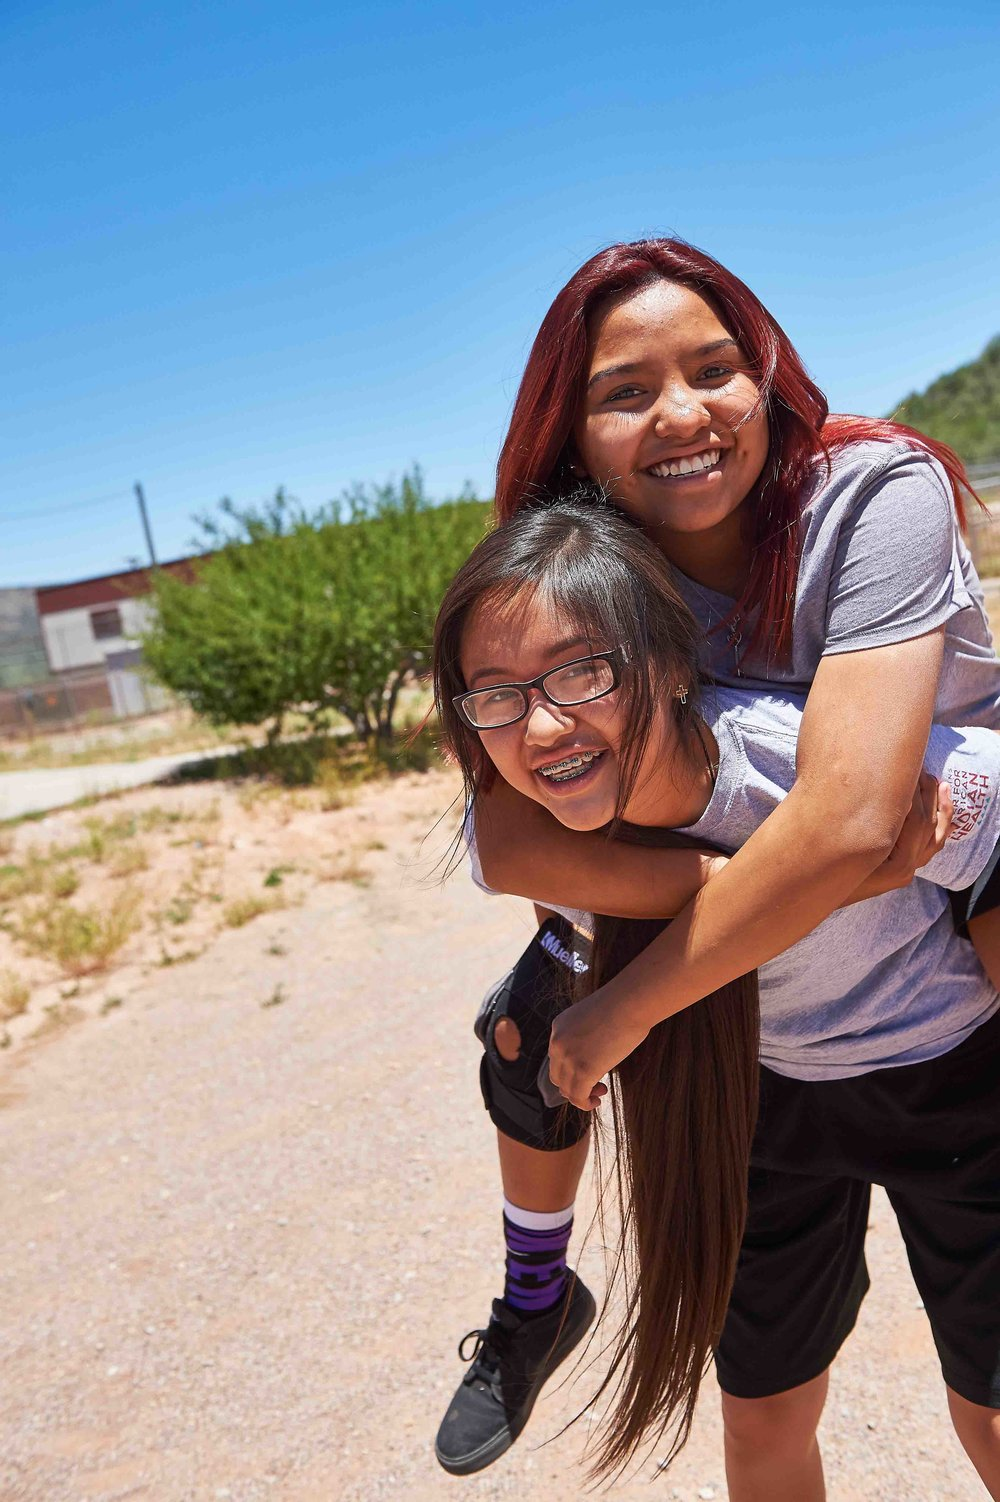 Female participants connect during an adolescent health program in Whiteriver, AZ/Fort Apache in 2016. Photo credit: Ed Cunicelli